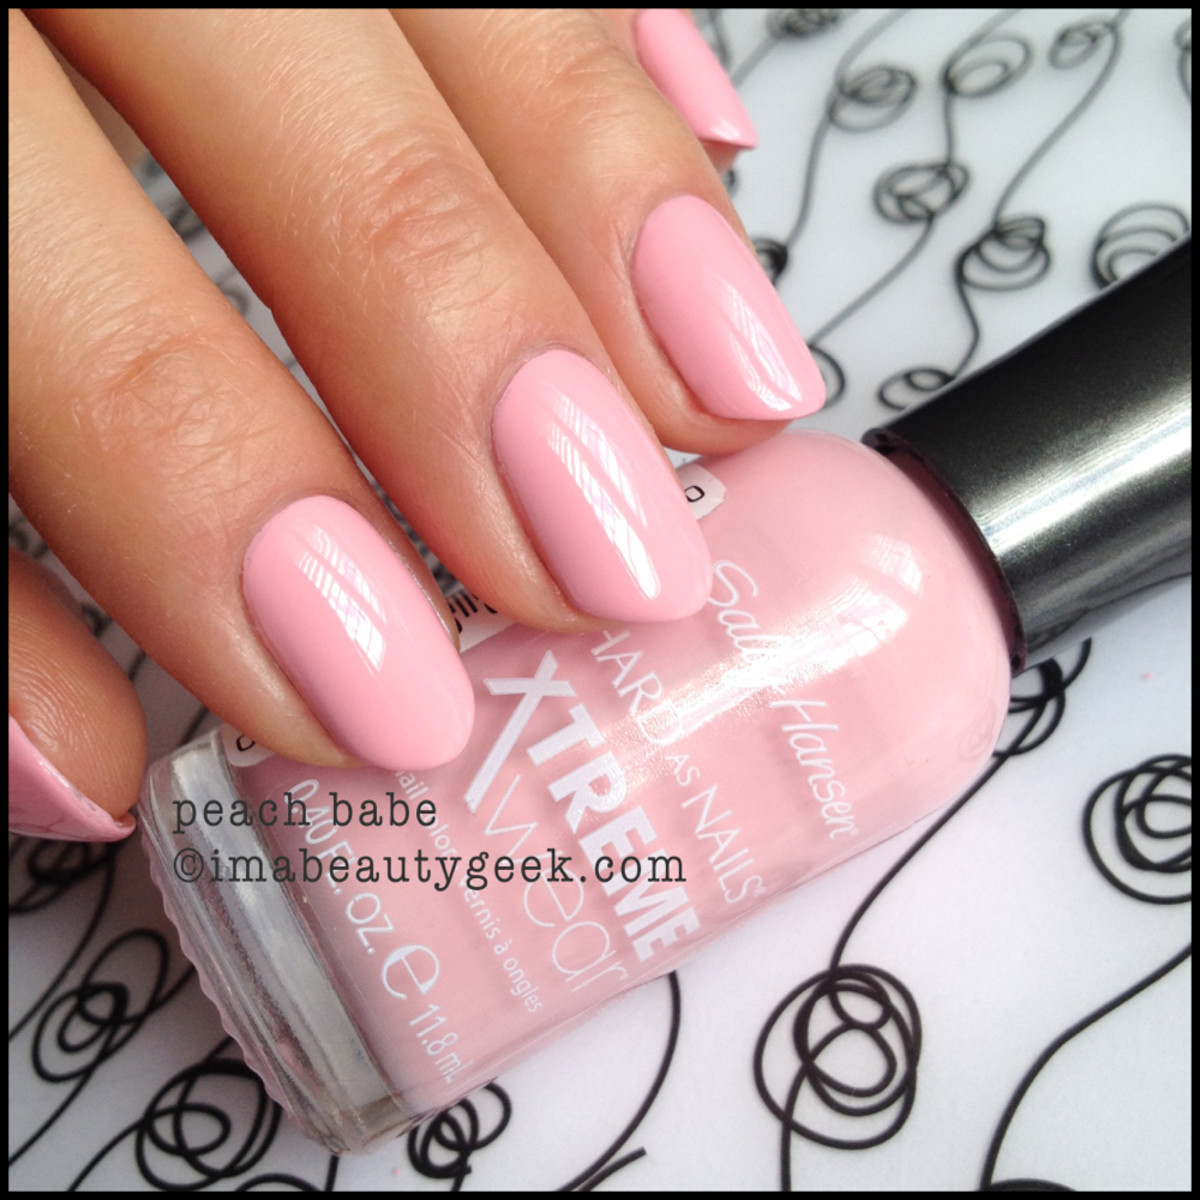 Sally Hansen Peach Babe Xtreme Wear